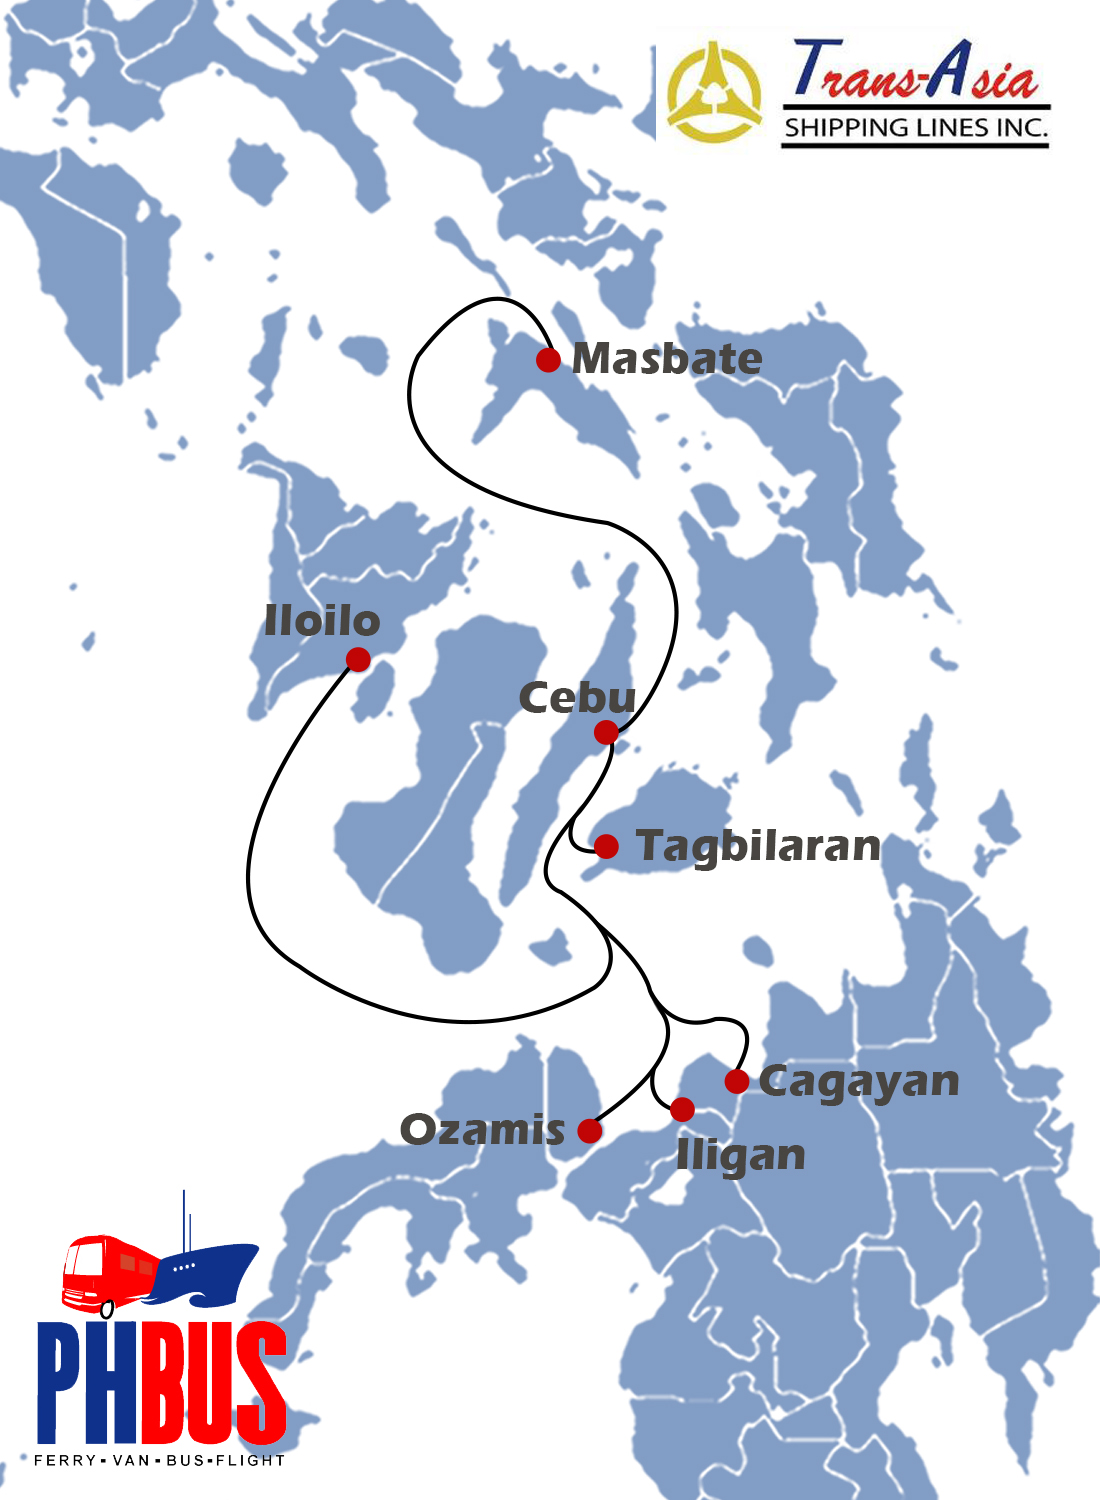 trans-asia-shipping-lines-ferryroute-map-phbus.jpg